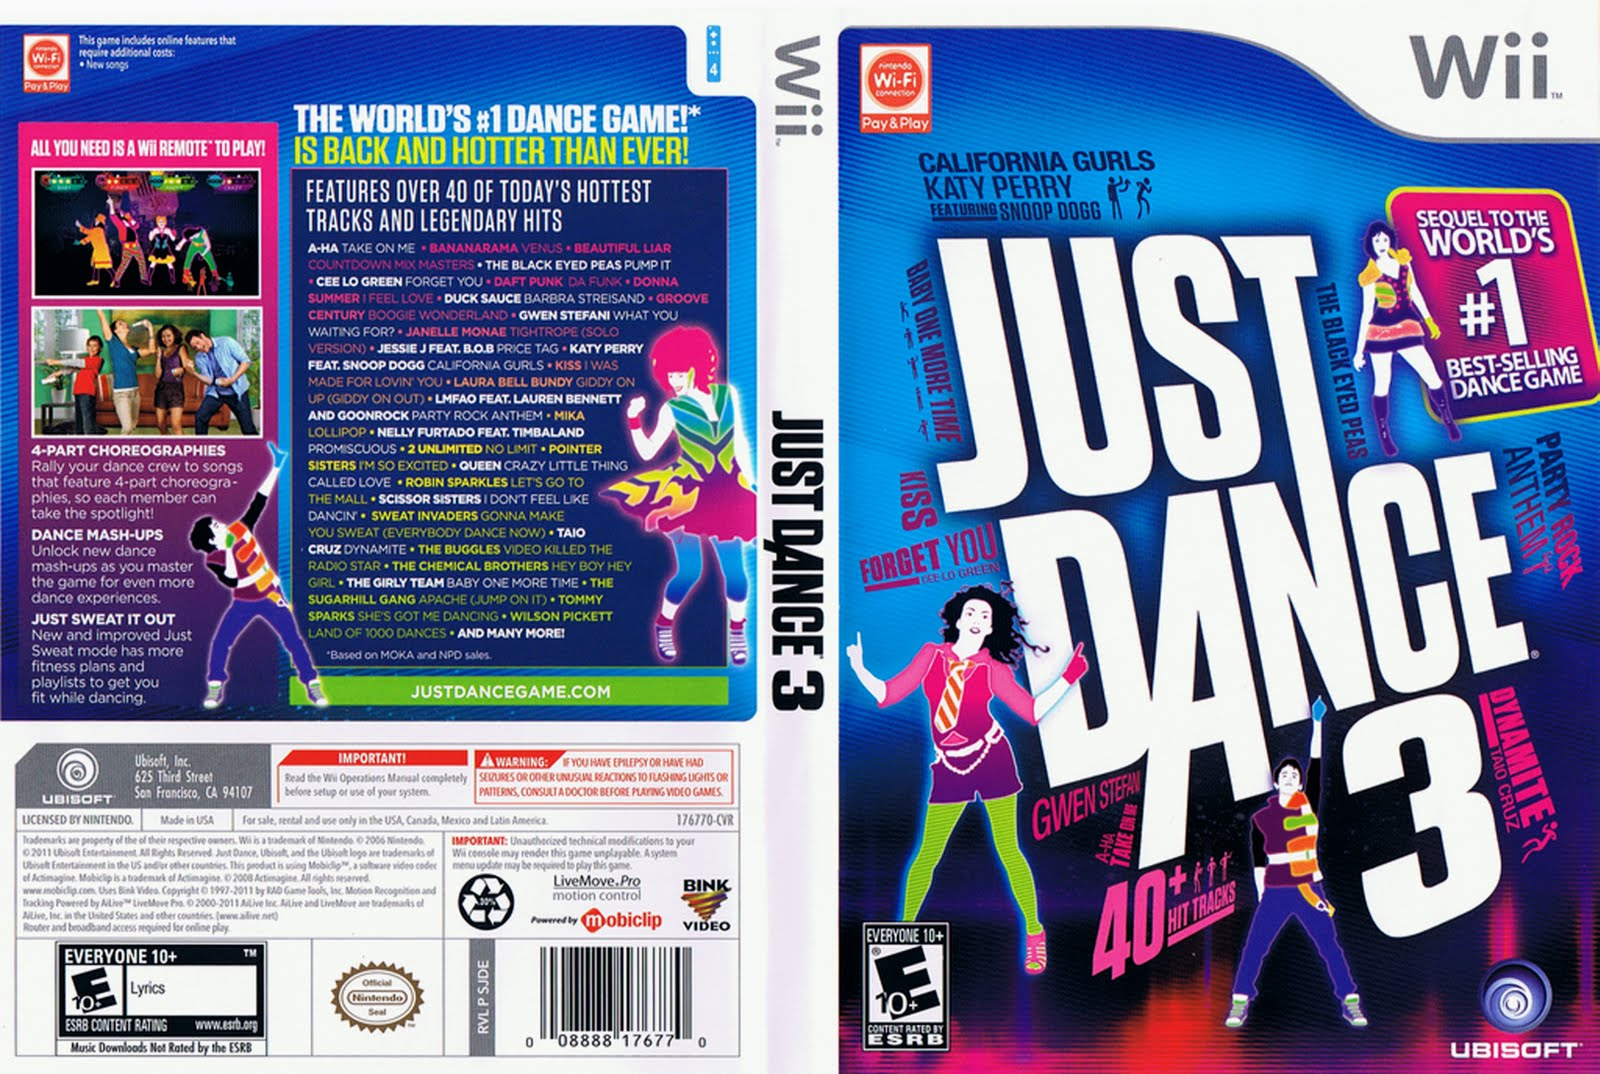 Wii with just dance : Angel perfume sale